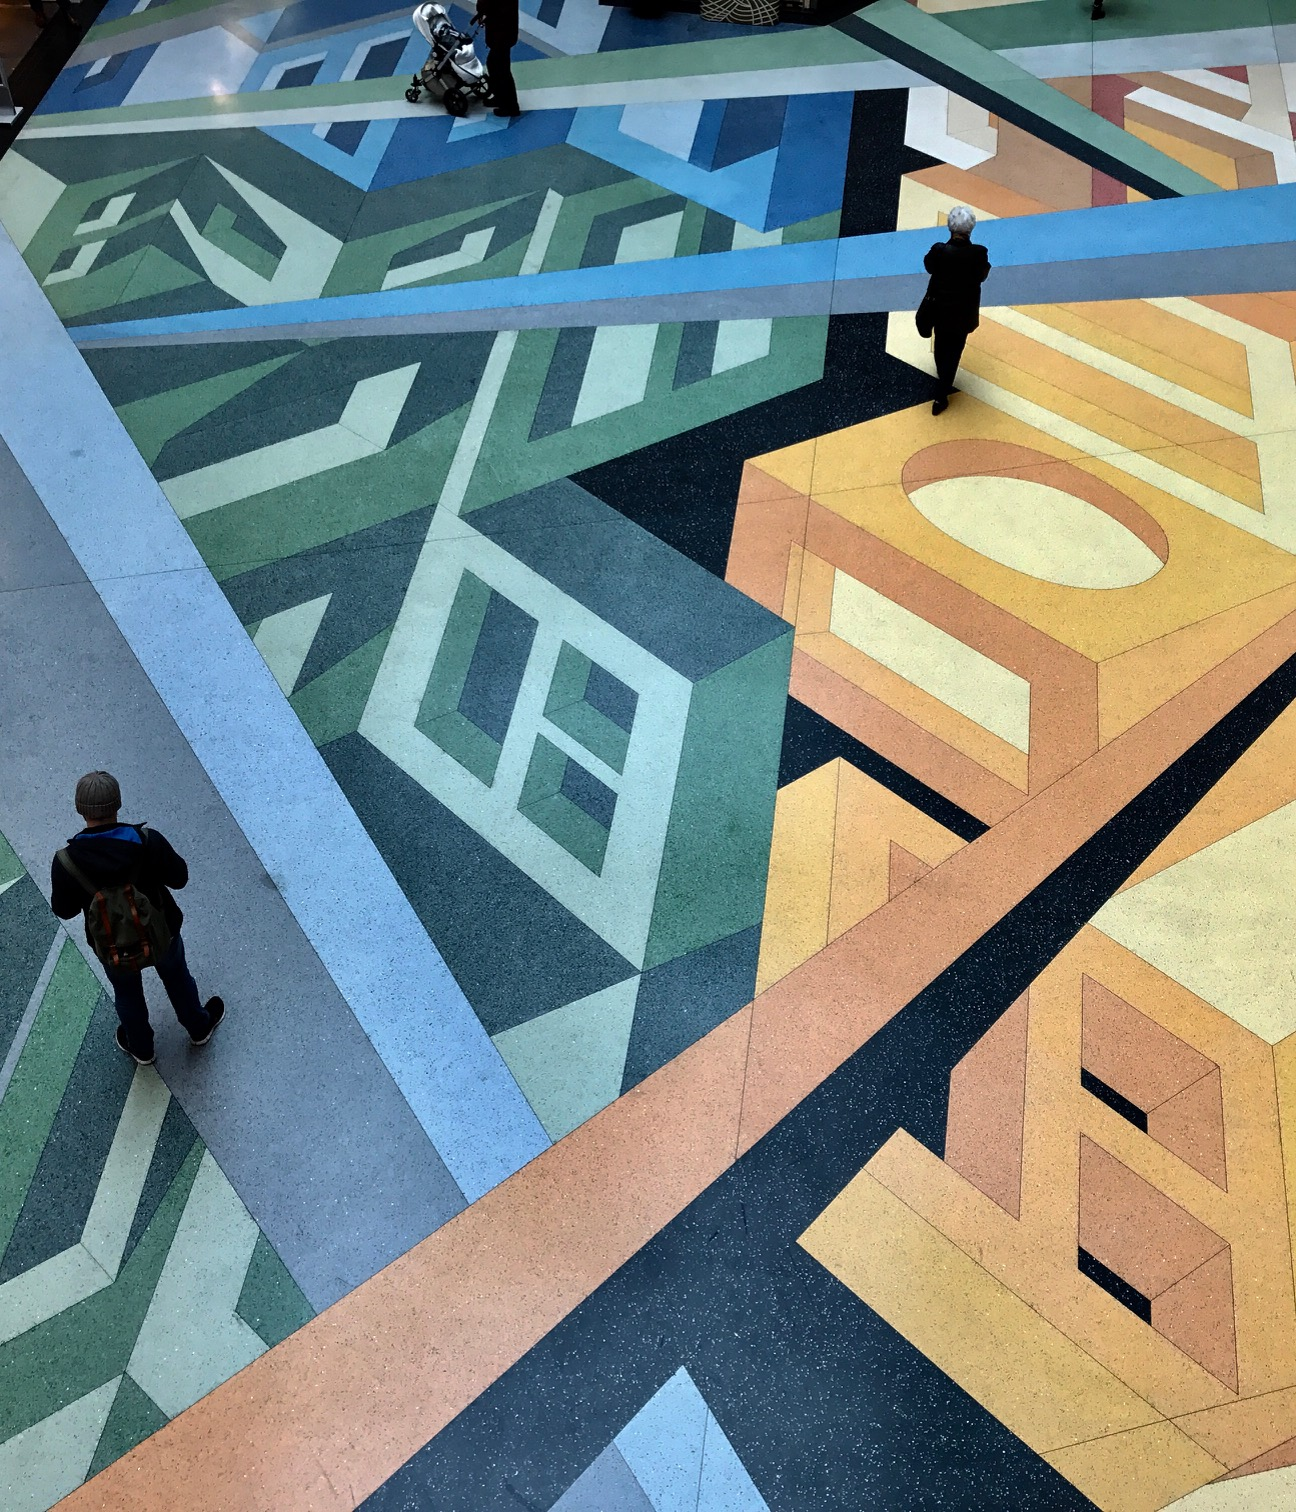 The floor of the Alexa shopping centre is a wonderful and colourful work of art that you get to walk on and see from above. How fun is this?